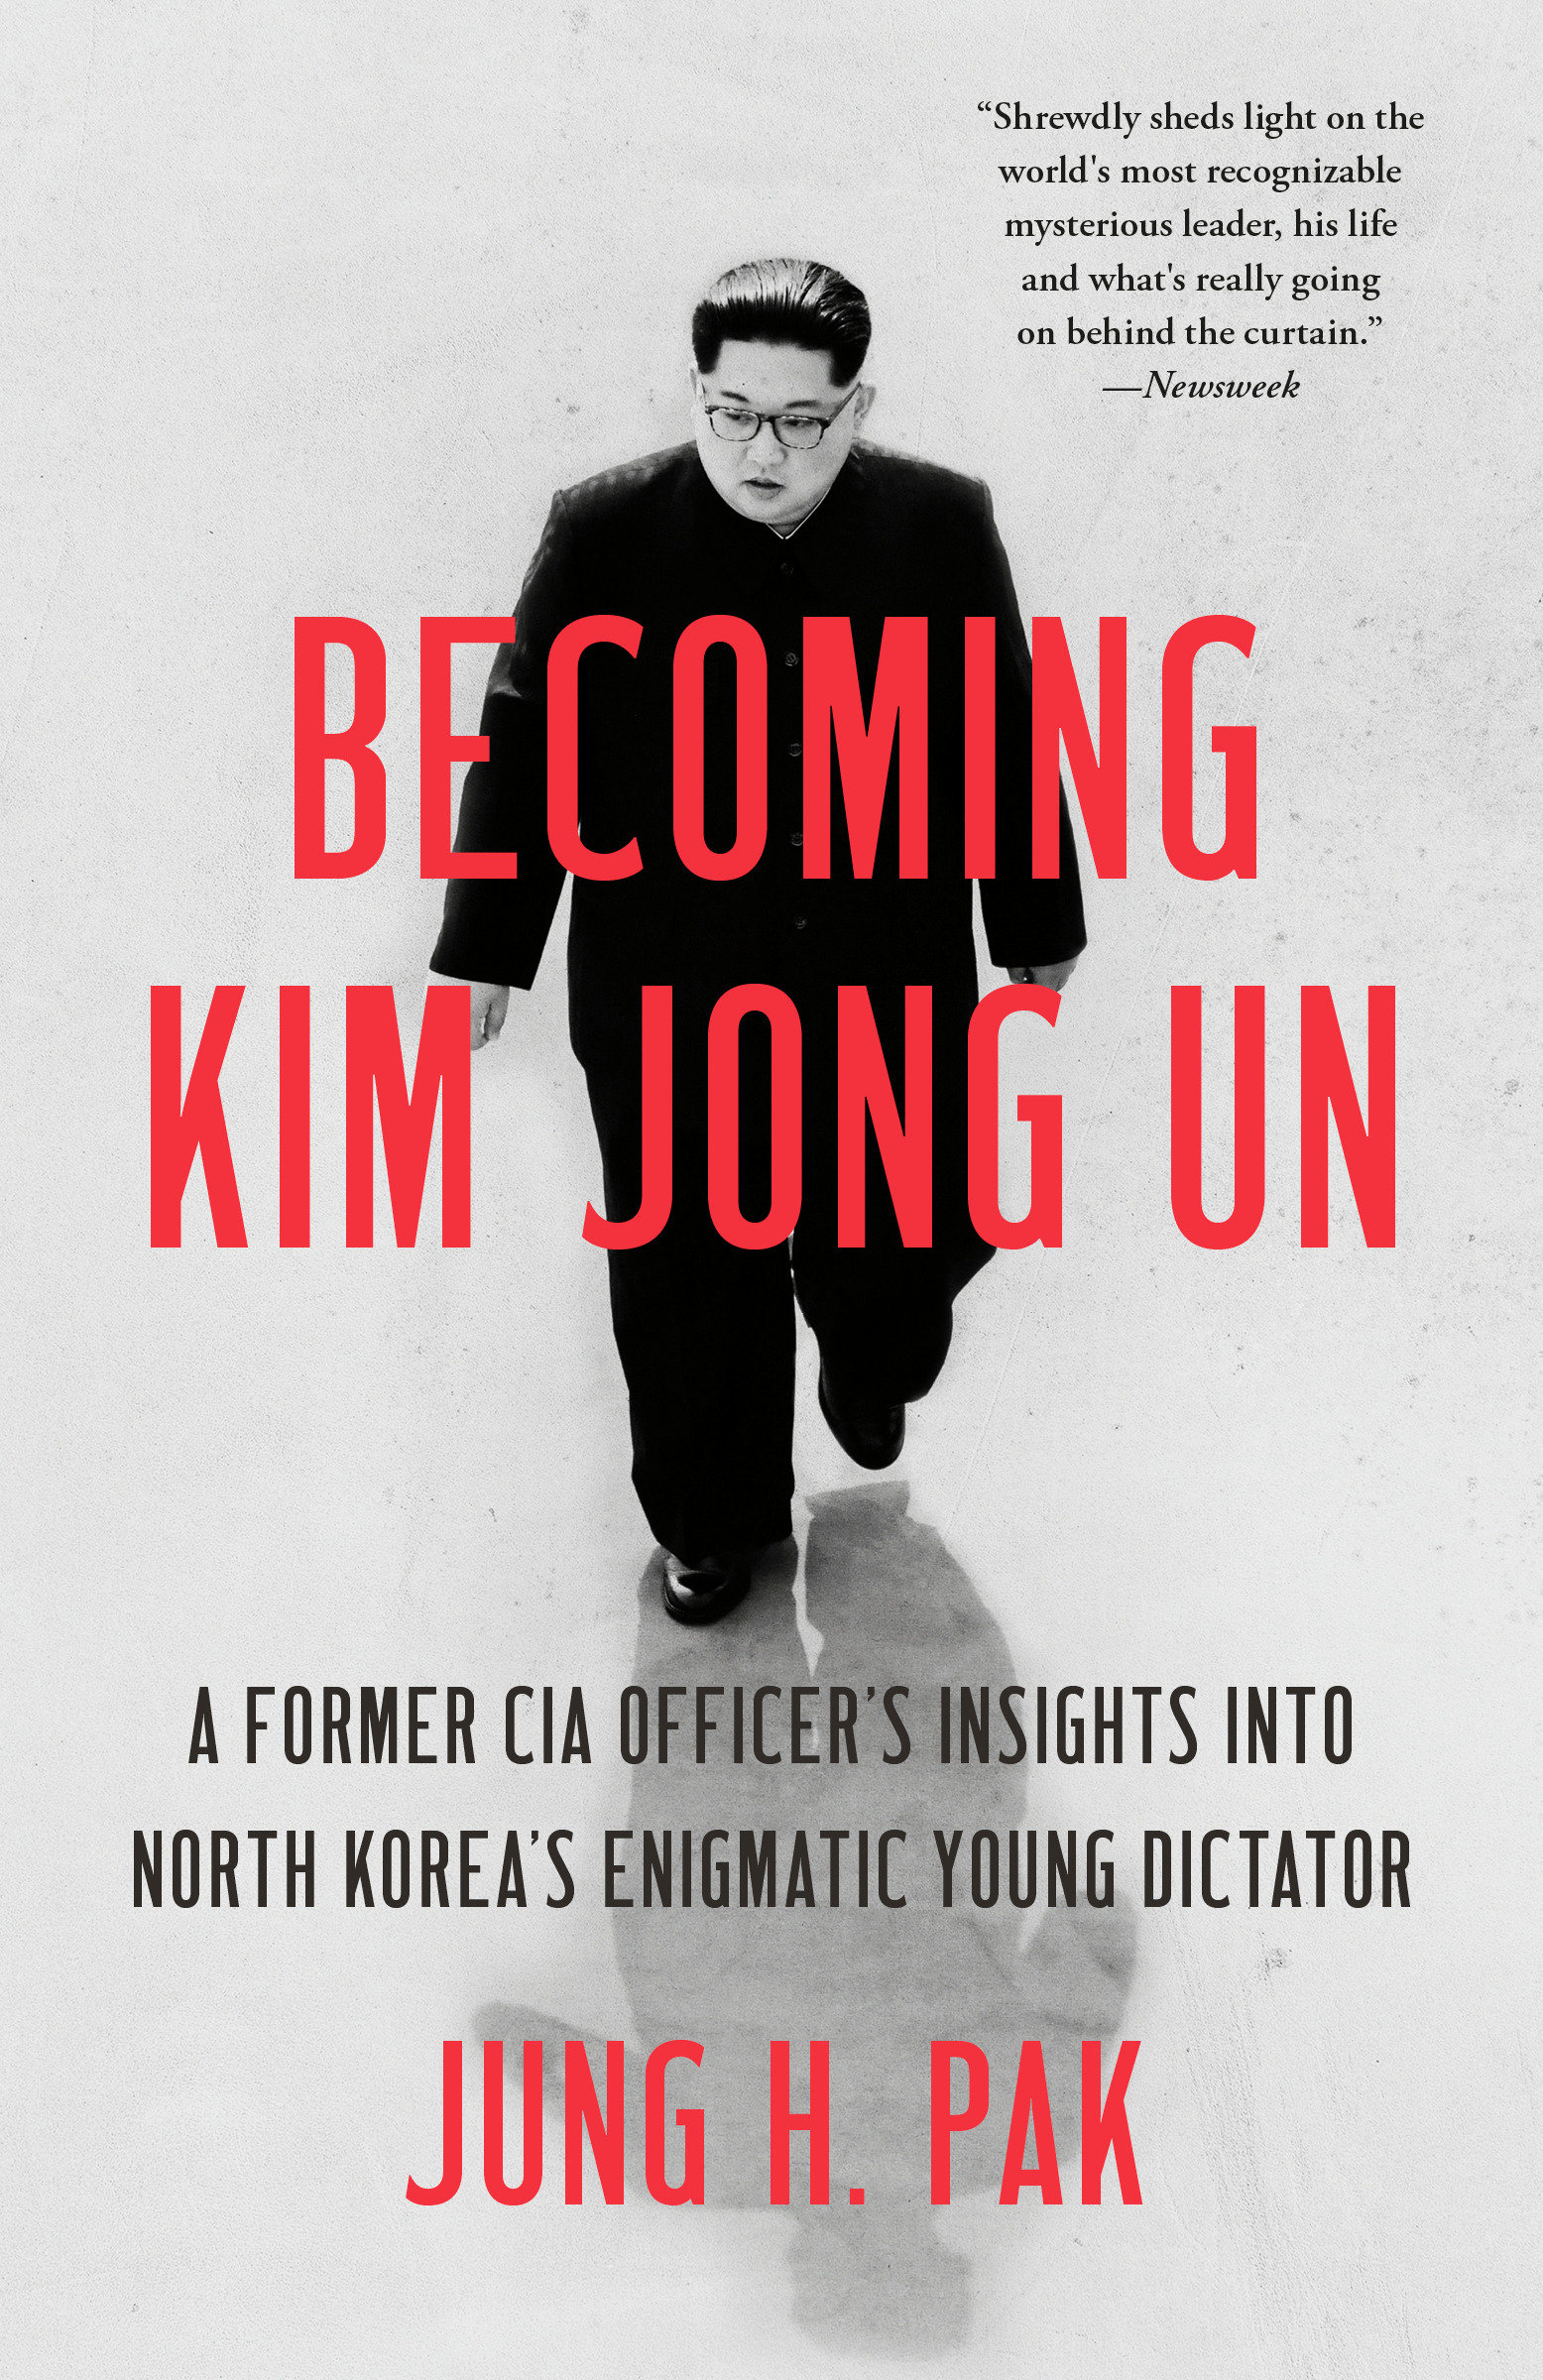 Becoming Kim Jong Un [electronic resource (downloadable eBook)] : a Former CIa Officer's Insights into North Korea's Enigmatic Young Dictator